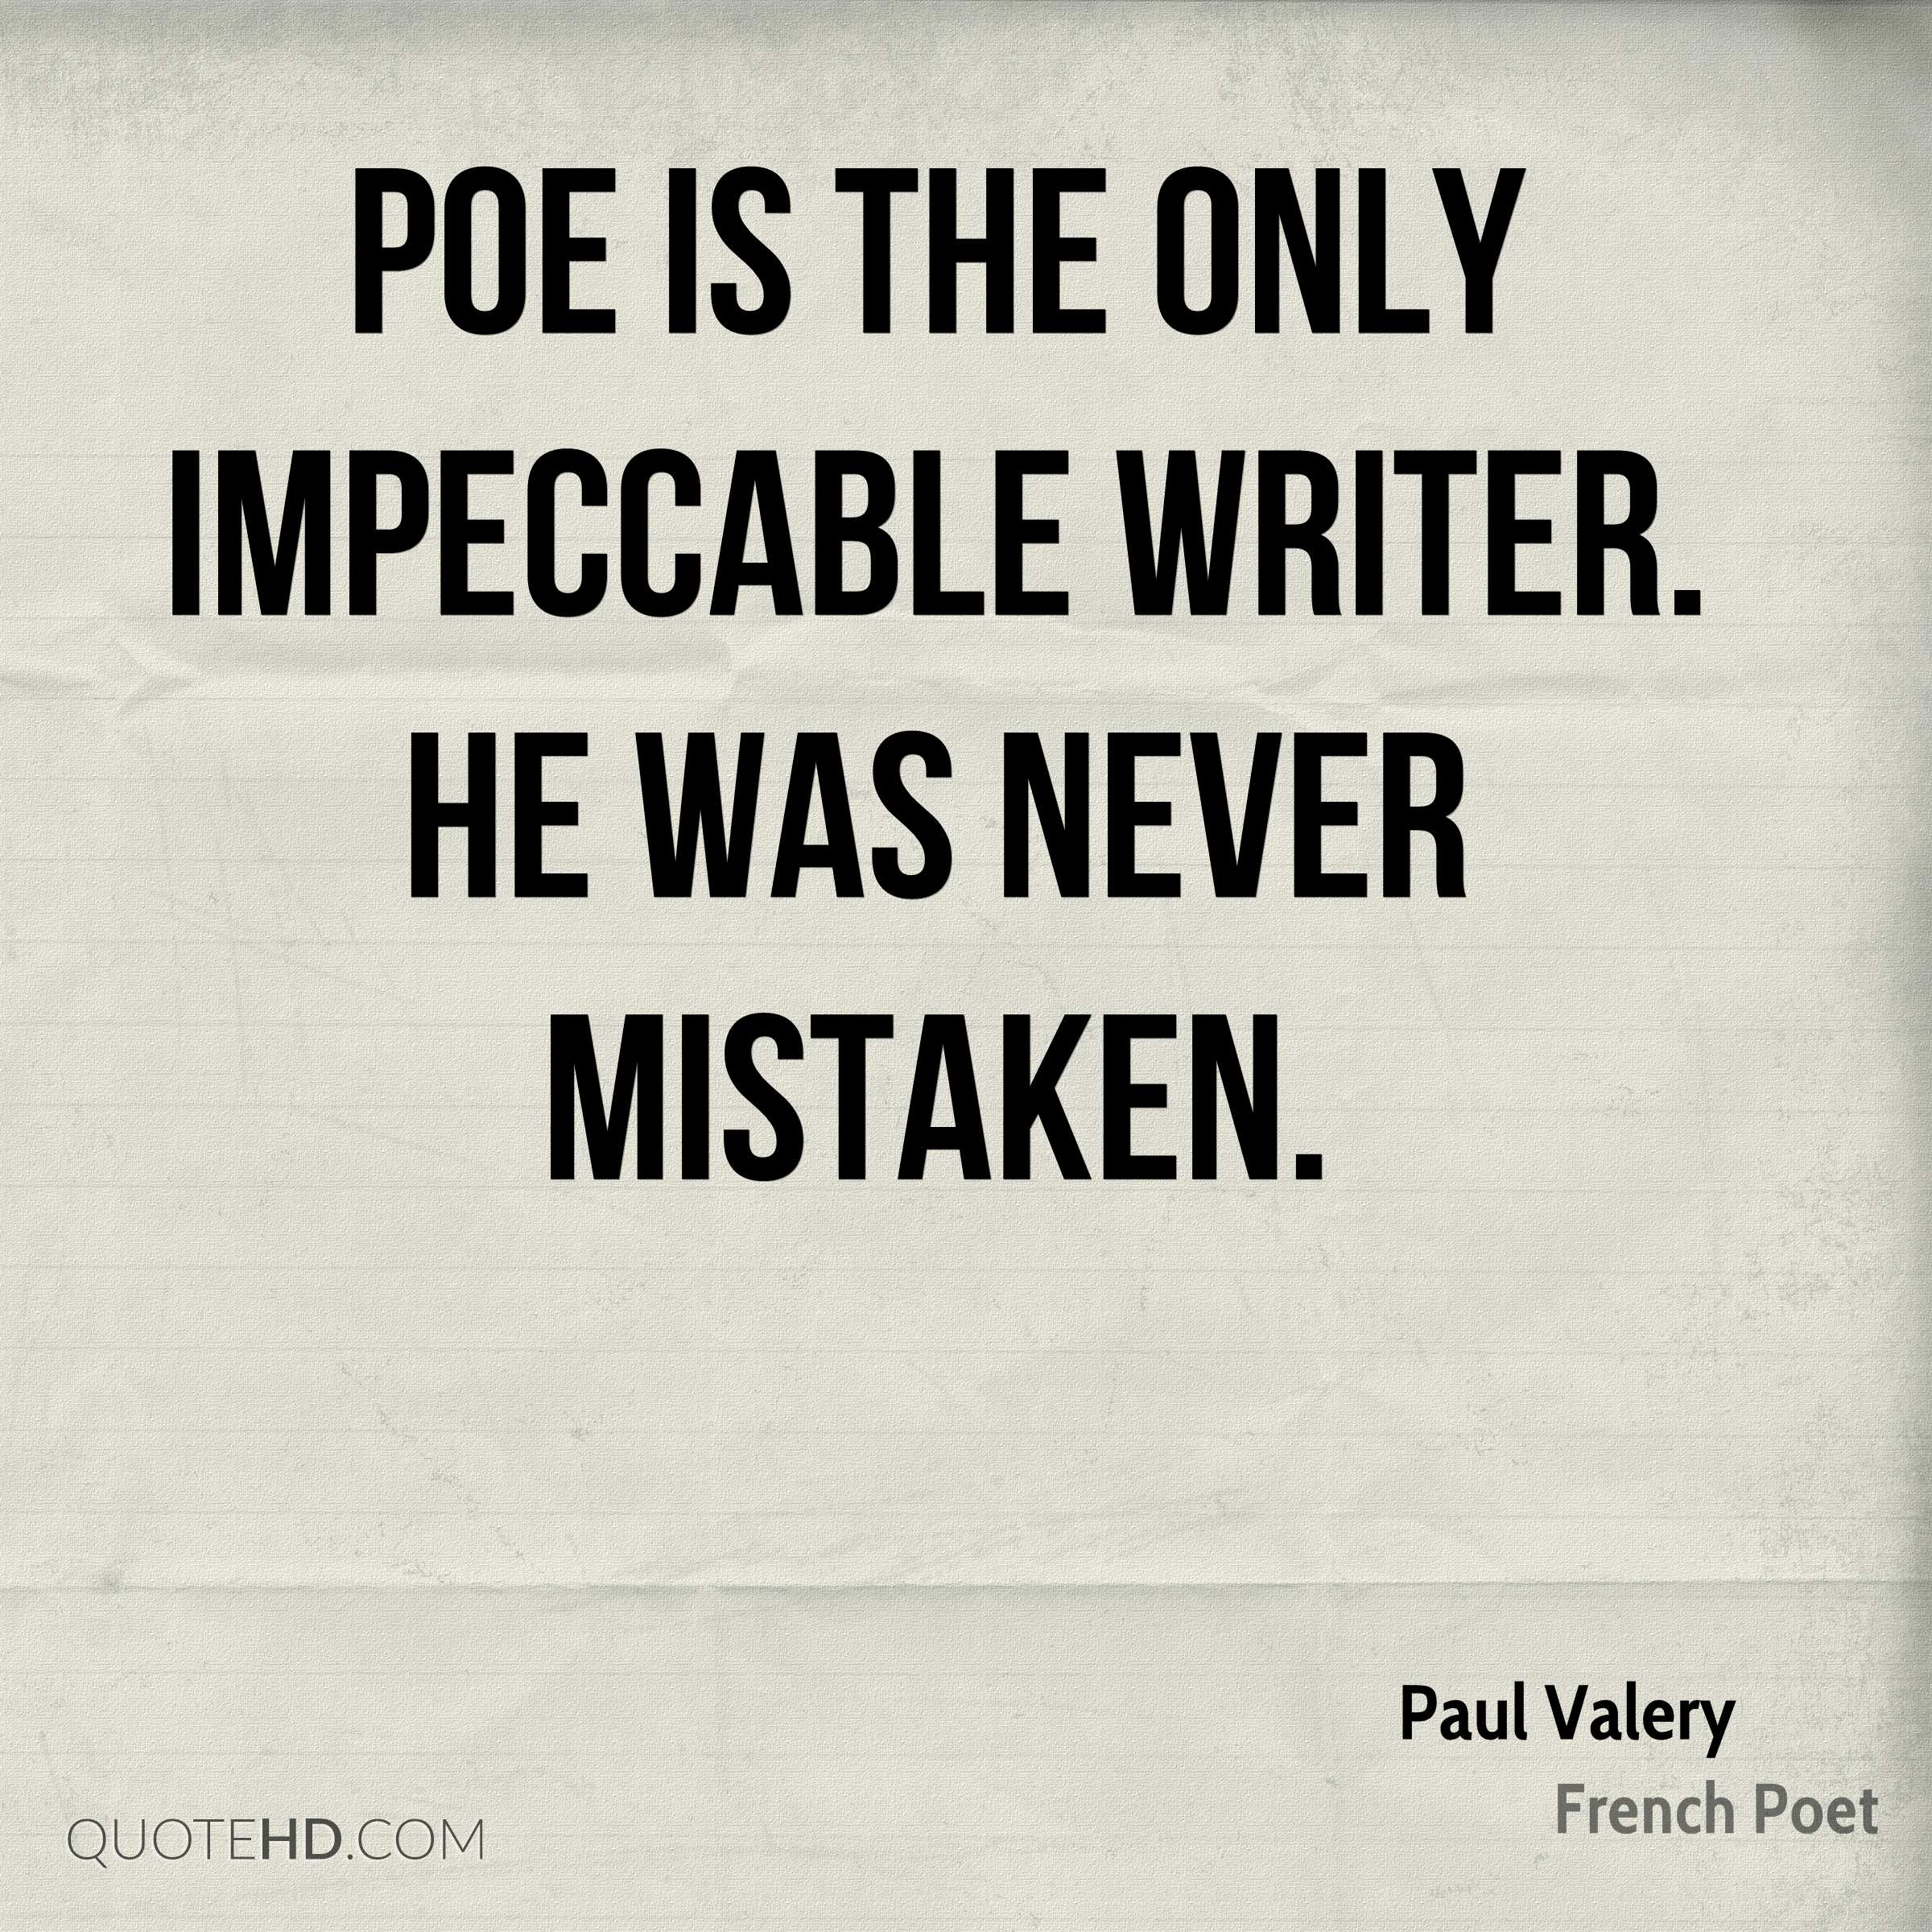 Poe is the only impeccable writer. He was never mistaken.